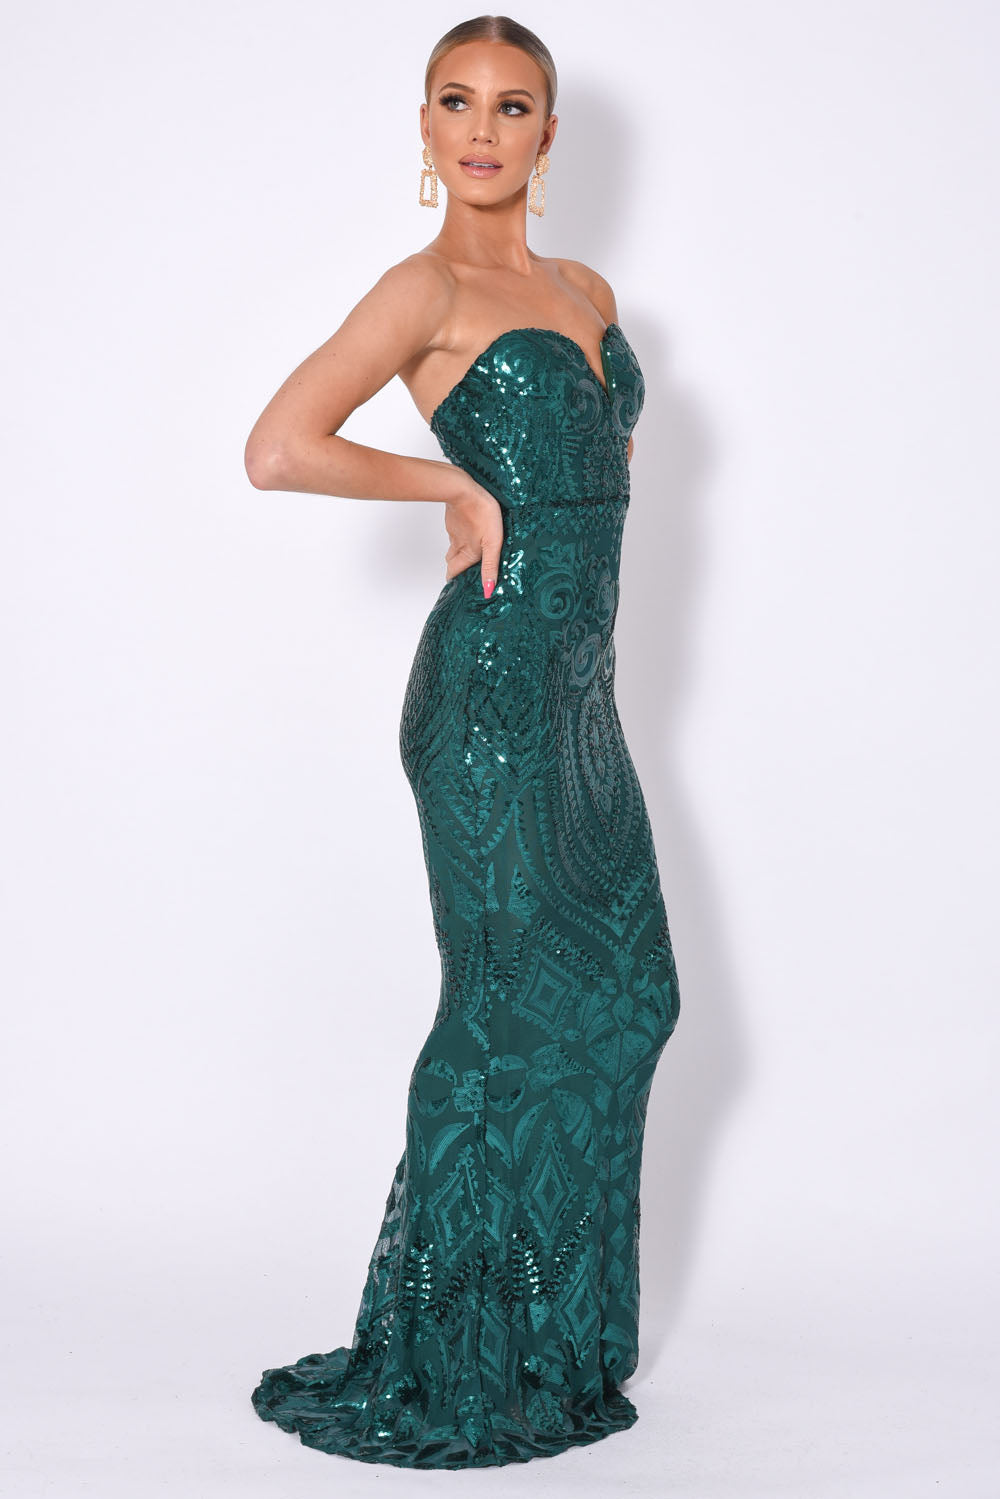 Kenza Green Luxe Sweetheart Plunge Sequin Embellished Fishtail Dress